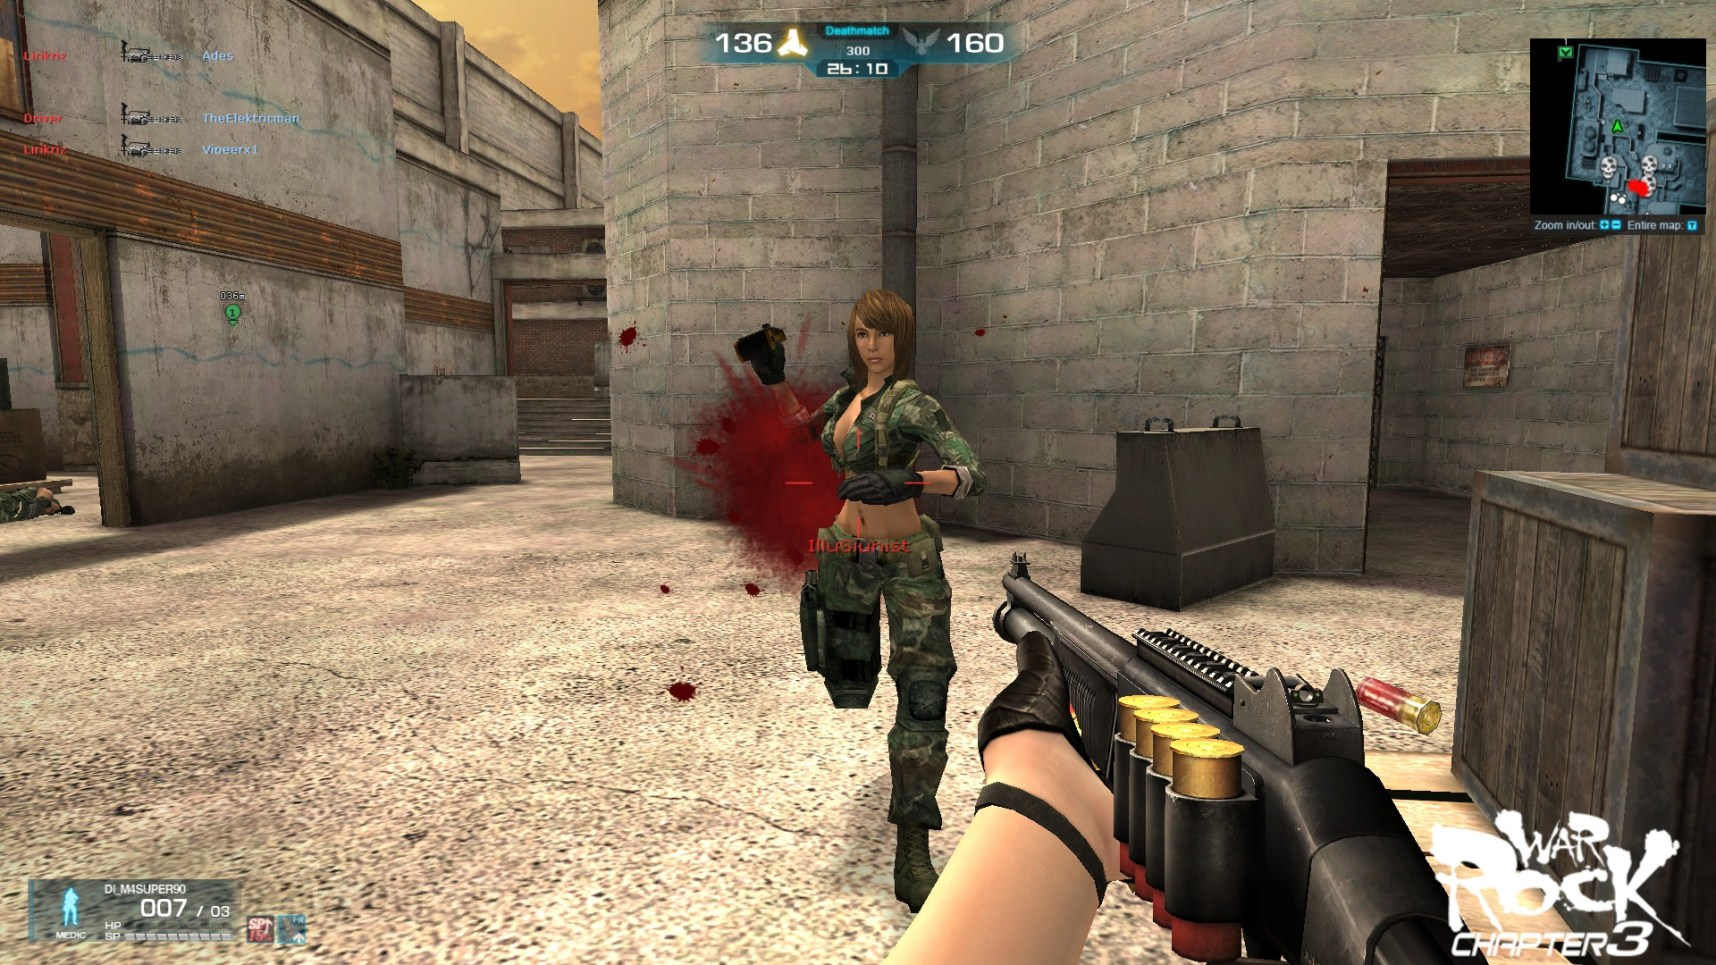 ss 1dcef632fa7b4614689c2ac86b8b507f02b88f6c.1920x1080 1024x576 - WAR ROCK (FPS FREE TO PLAY)